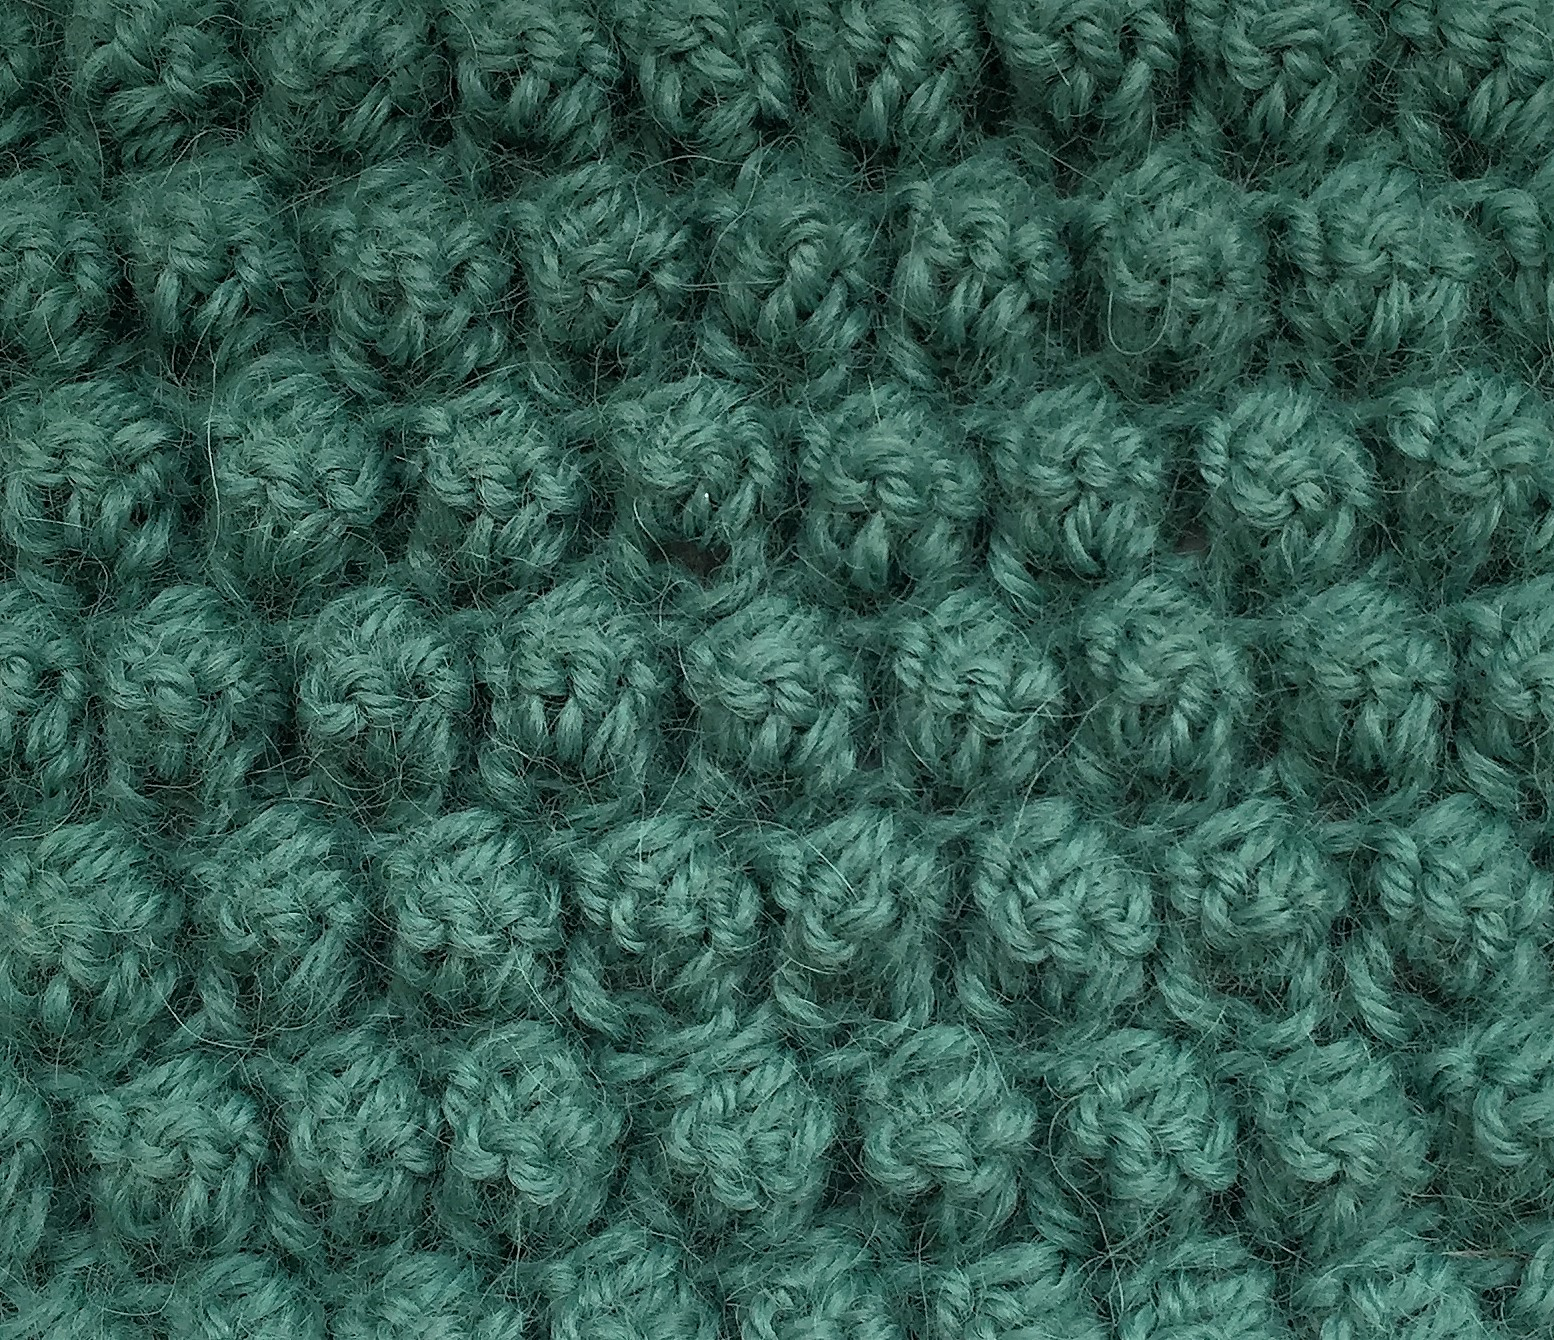 Textured Knits Gooseberry Stitch